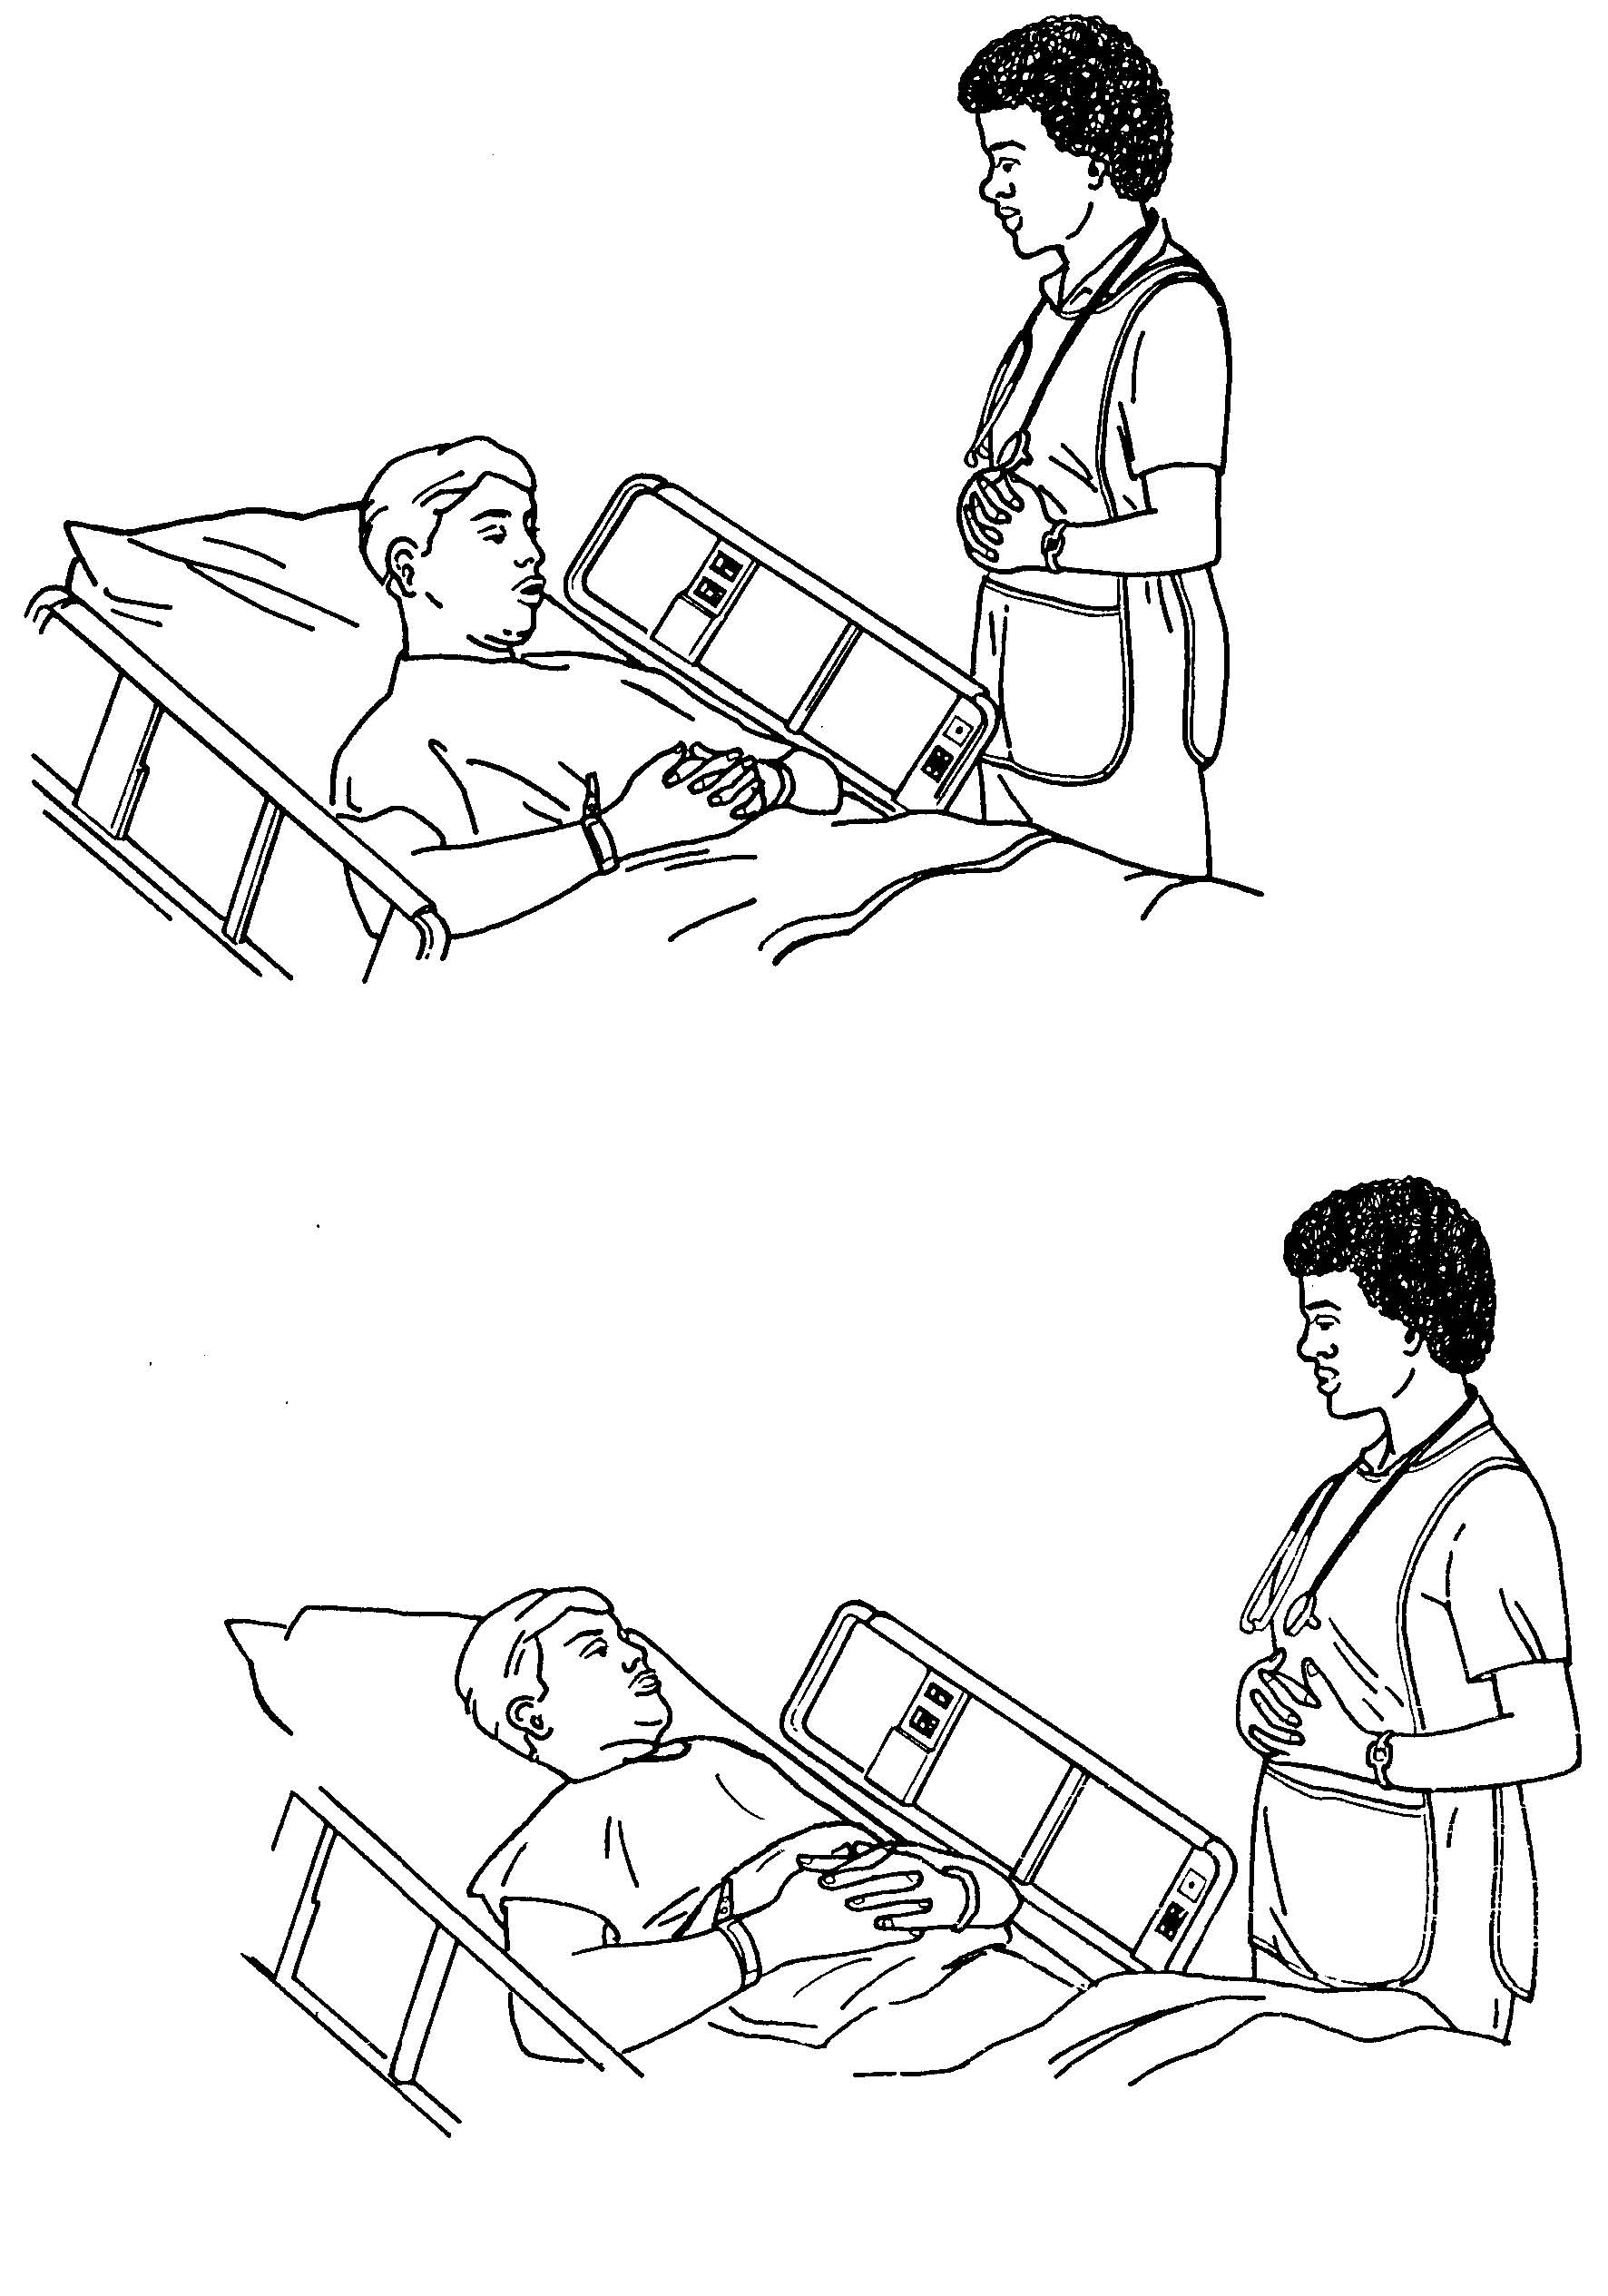 Preoperative Care Of The Surgical Patient